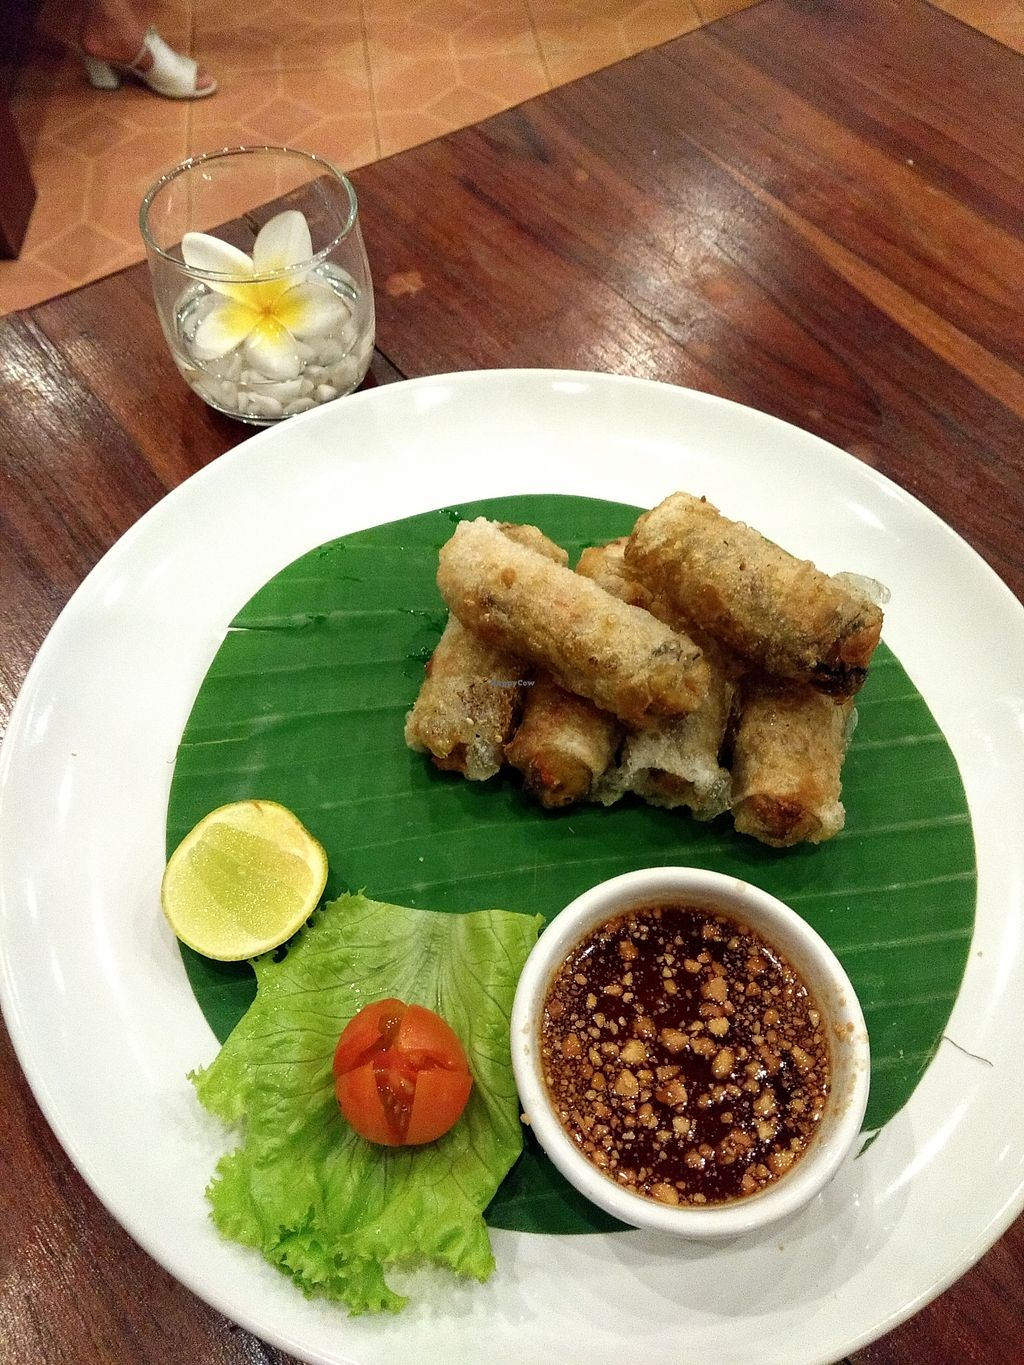 "Photo of Khaiphaen  by <a href=""/members/profile/Kkdempsey"">Kkdempsey</a> <br/>Crispy spring rolls were delicious <br/> November 30, 2017  - <a href='/contact/abuse/image/67897/330730'>Report</a>"